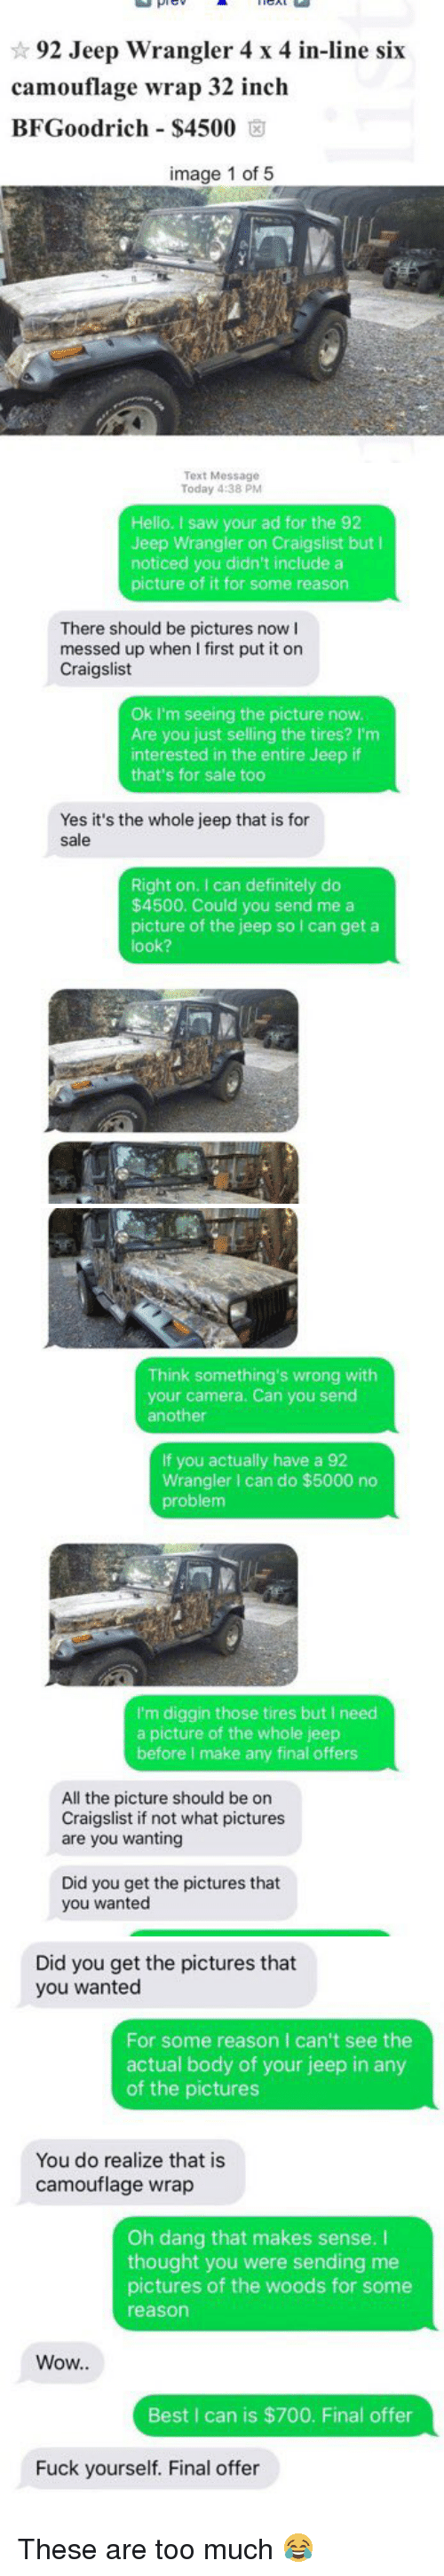 bfgoodrich: 92 Jeep Wrangler 4 x 4 in-line six  camouflage wrap 32 inch  BFGoodrich S4500  image 1 of 5   Text Message  Today 4:38 PM  Hello. I saw your ad for the 92  Jeep Wrangler on Craigslist but I  noticed you didn't include a  picture of it for some reason  There should be pictures now I  messed up when I first put it on  Craigslist  Ok I'm seeing the picture now.  Are you just selling the tires? I'm  interested in the entire Jeep if  that's for sale too  Yes it's the whole jeep that is for  sale  Right on. can definitely do  $4500. Could you send me a  picture of the jeep so I can get a  look?   Think something's wrong with  your camera. Can you send  another  If you actually have a 92  Wrangler I can do $5000 no  problem  I'm diggin those tires but I need  a picture of the whole jeep  before make any final offers  All the picture should be on  Craigslist if not what pictures  are you wanting  Did you get the pictures that  you wanted   Did you get the pictures that  you wanted  For some reason I can't see the  actual body of your jeep in any  of the pictures  You do realize that is  camouflage wrap  Oh dang that makes sense.  thought you were sending me  pictures of the woods for some  reason  Wow..  Best I can is $700. Final offer  Fuck yourself. Final offer These are too much 😂